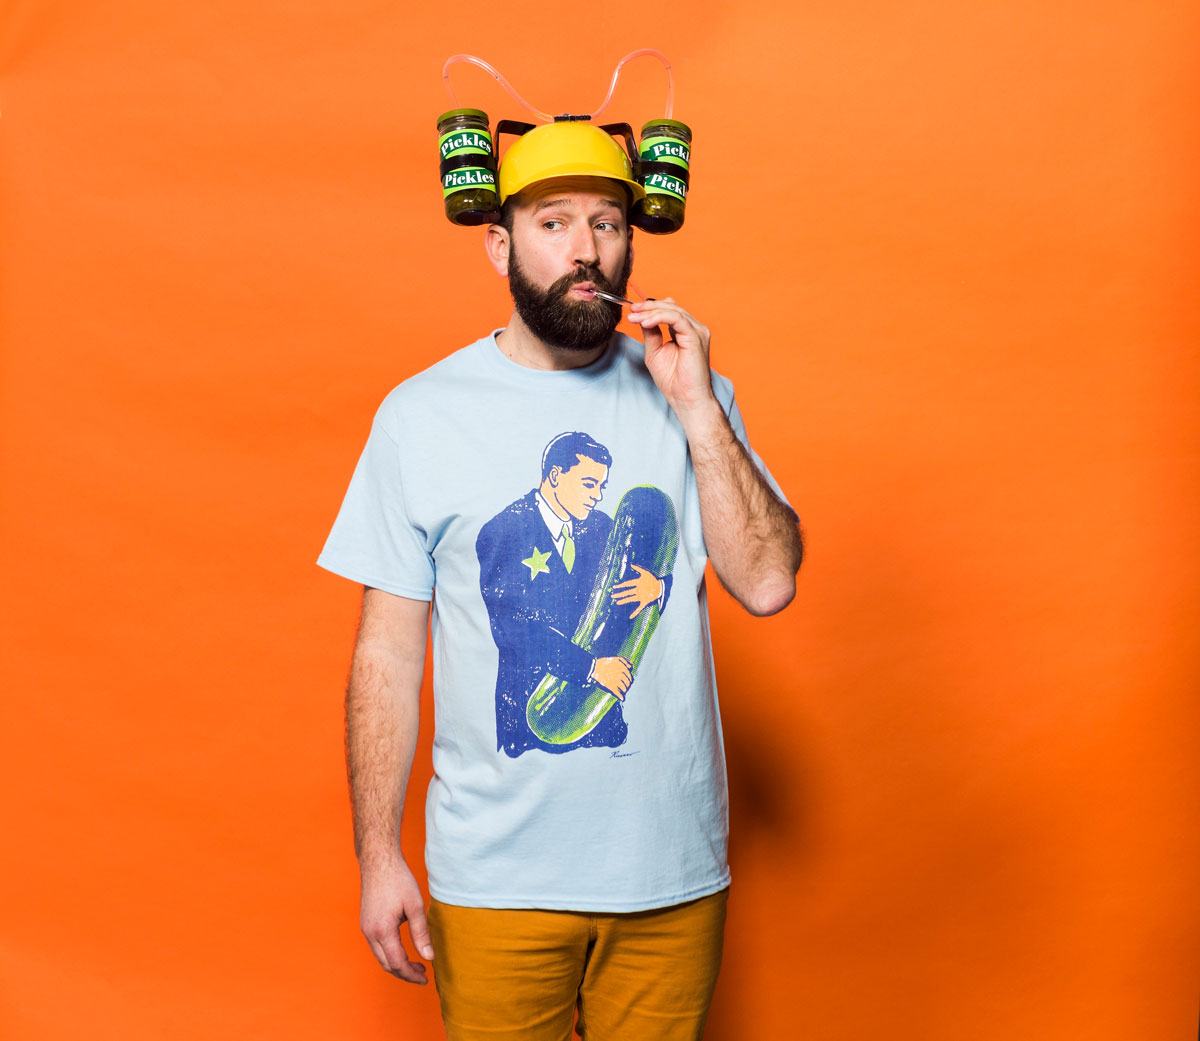 man drinking beer from hat with straws